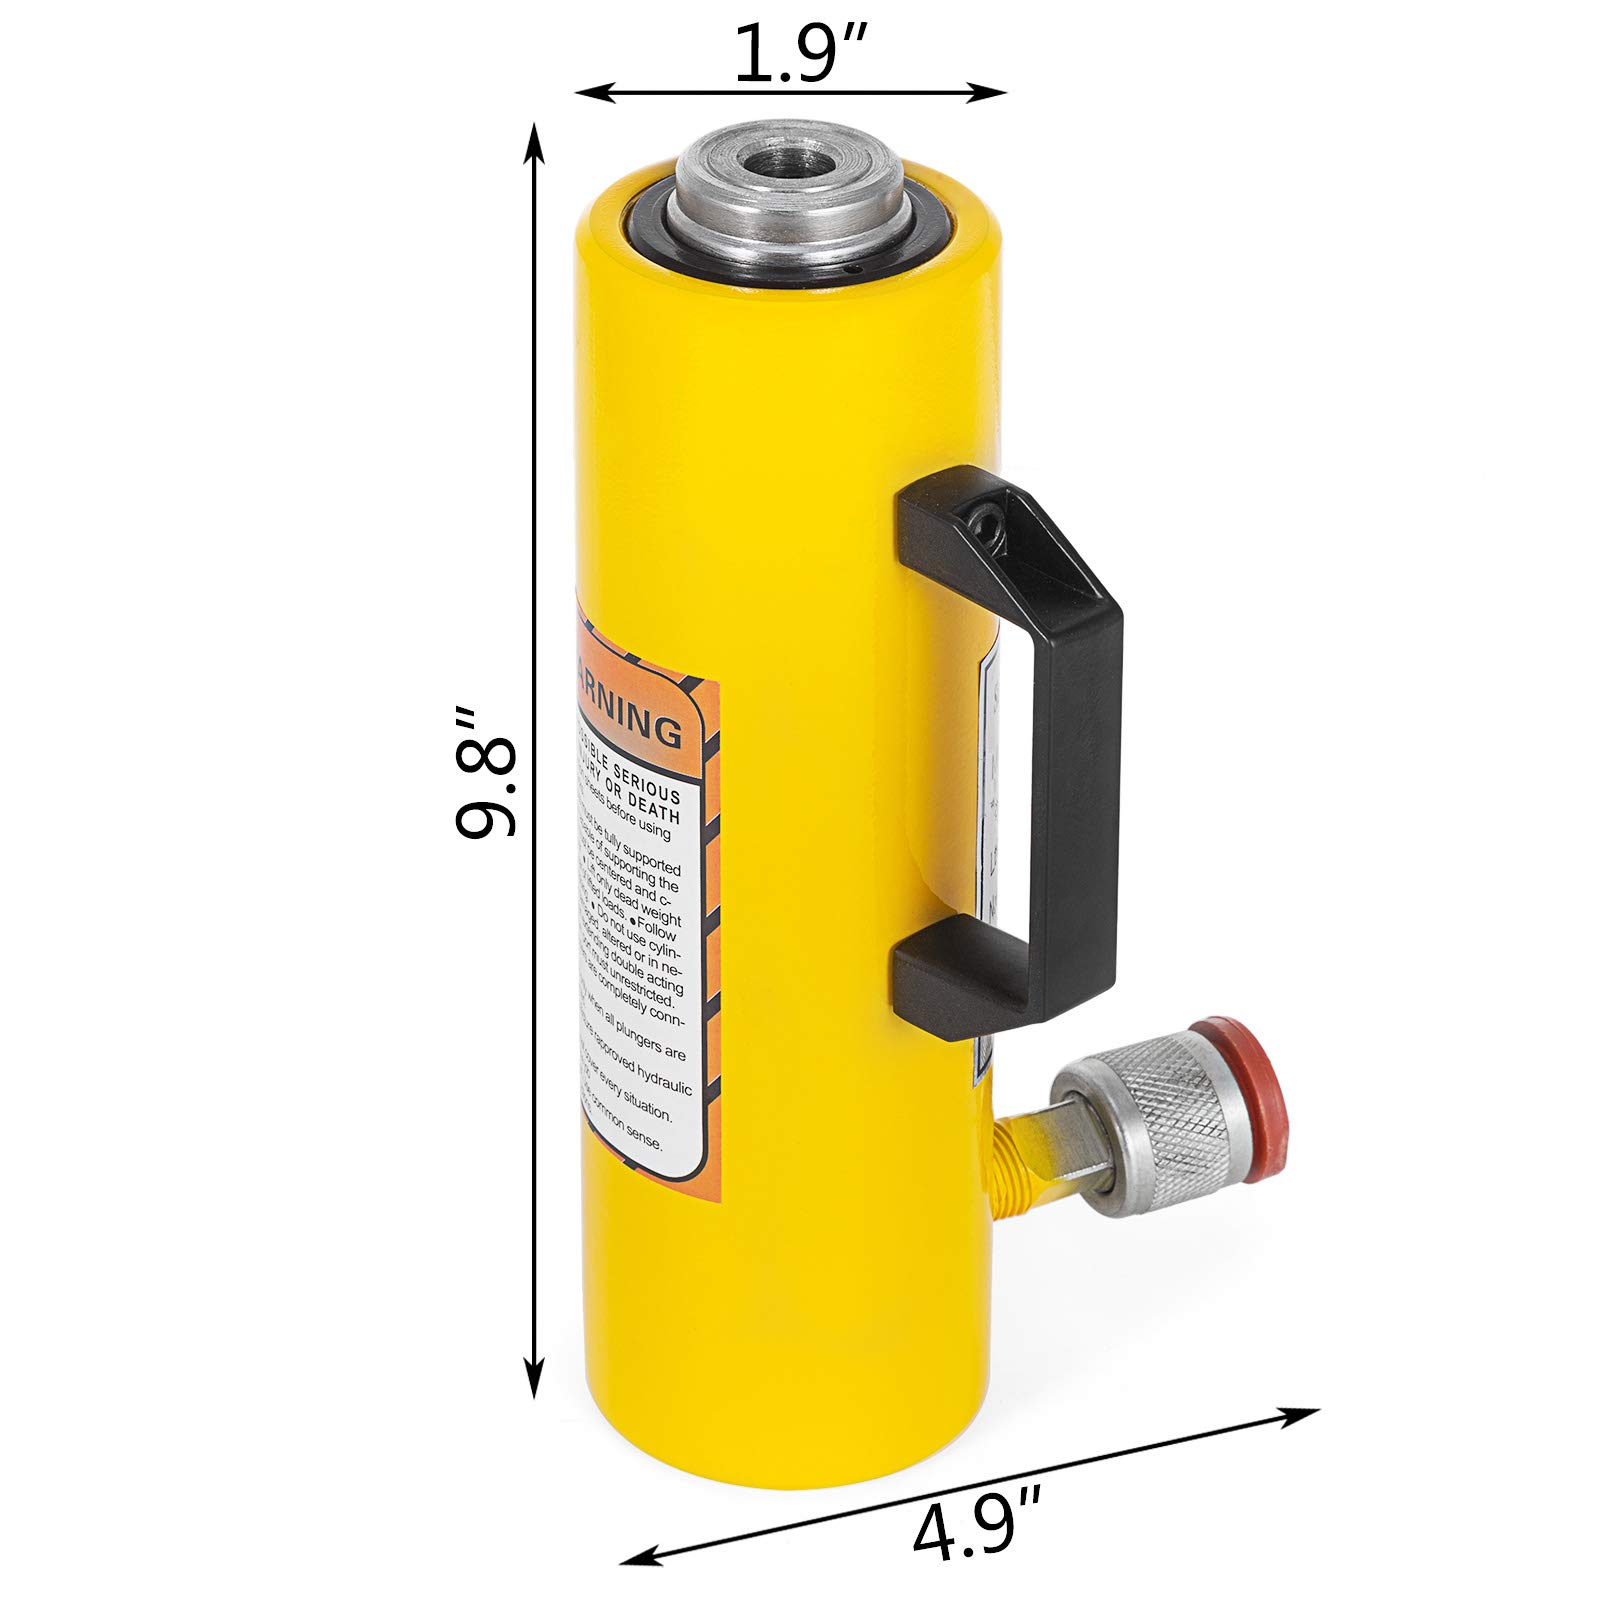 Mophorn 10T 6'' Stroke Hydraulic Cylinder Jack Solid Single Acting Hydraulic Ram Cylinder 150mm Hydraulic Lifting Cylinders for Riggers Fabricators (10T 6'') by Mophorn (Image #2)